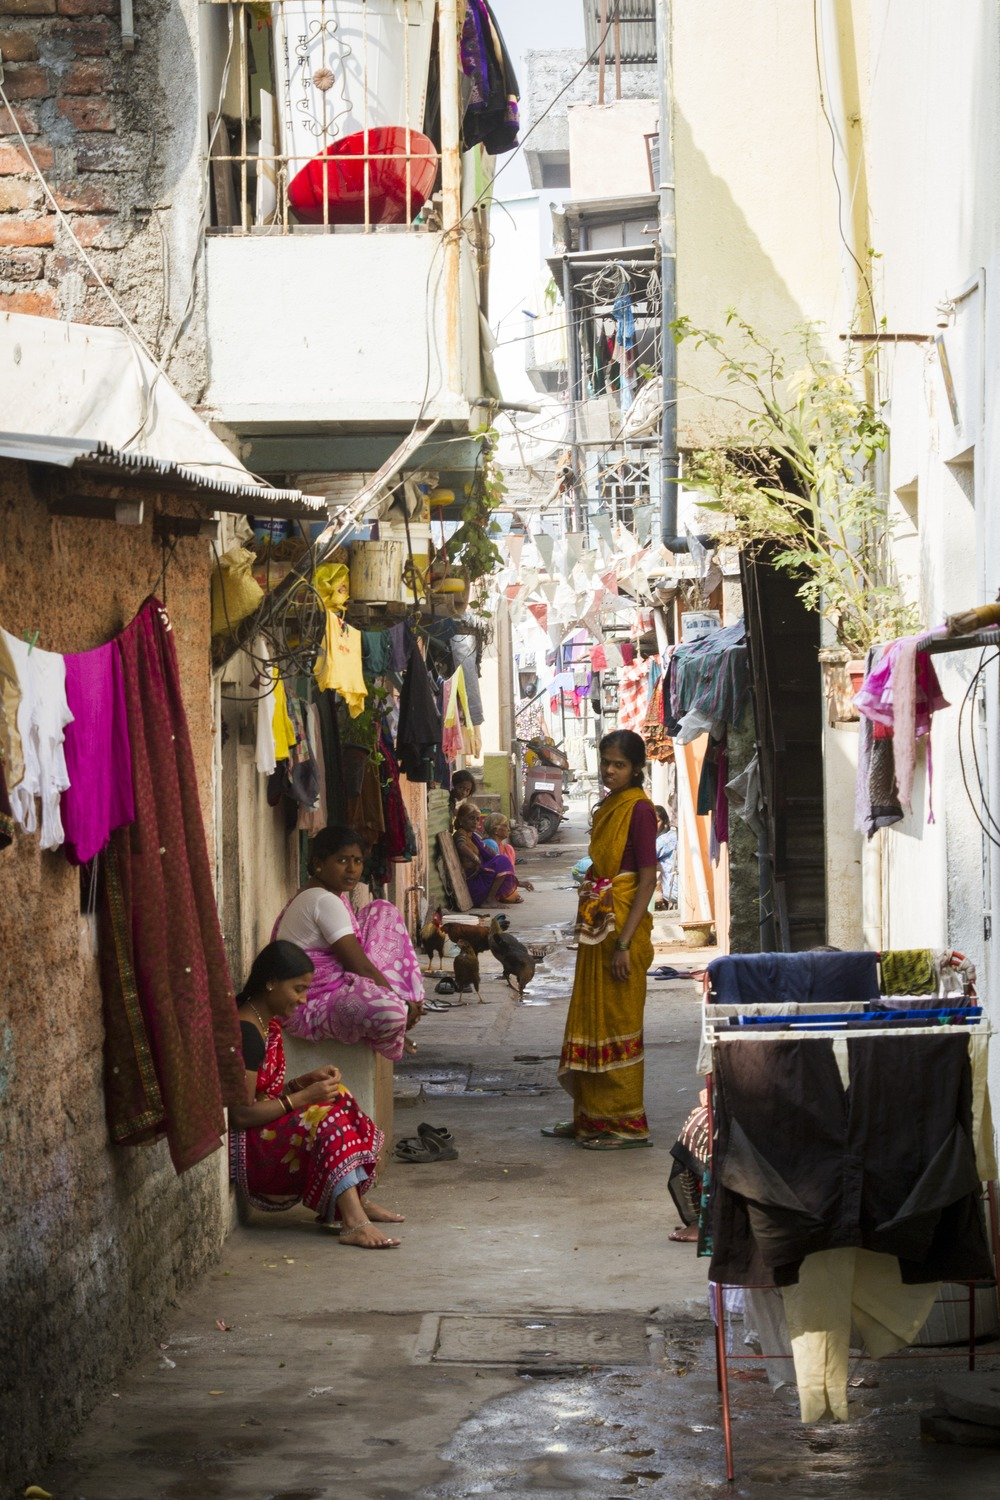 Many people live in similar  narrow, crowded streets and brick buildings like  this part of Wadarvadi.